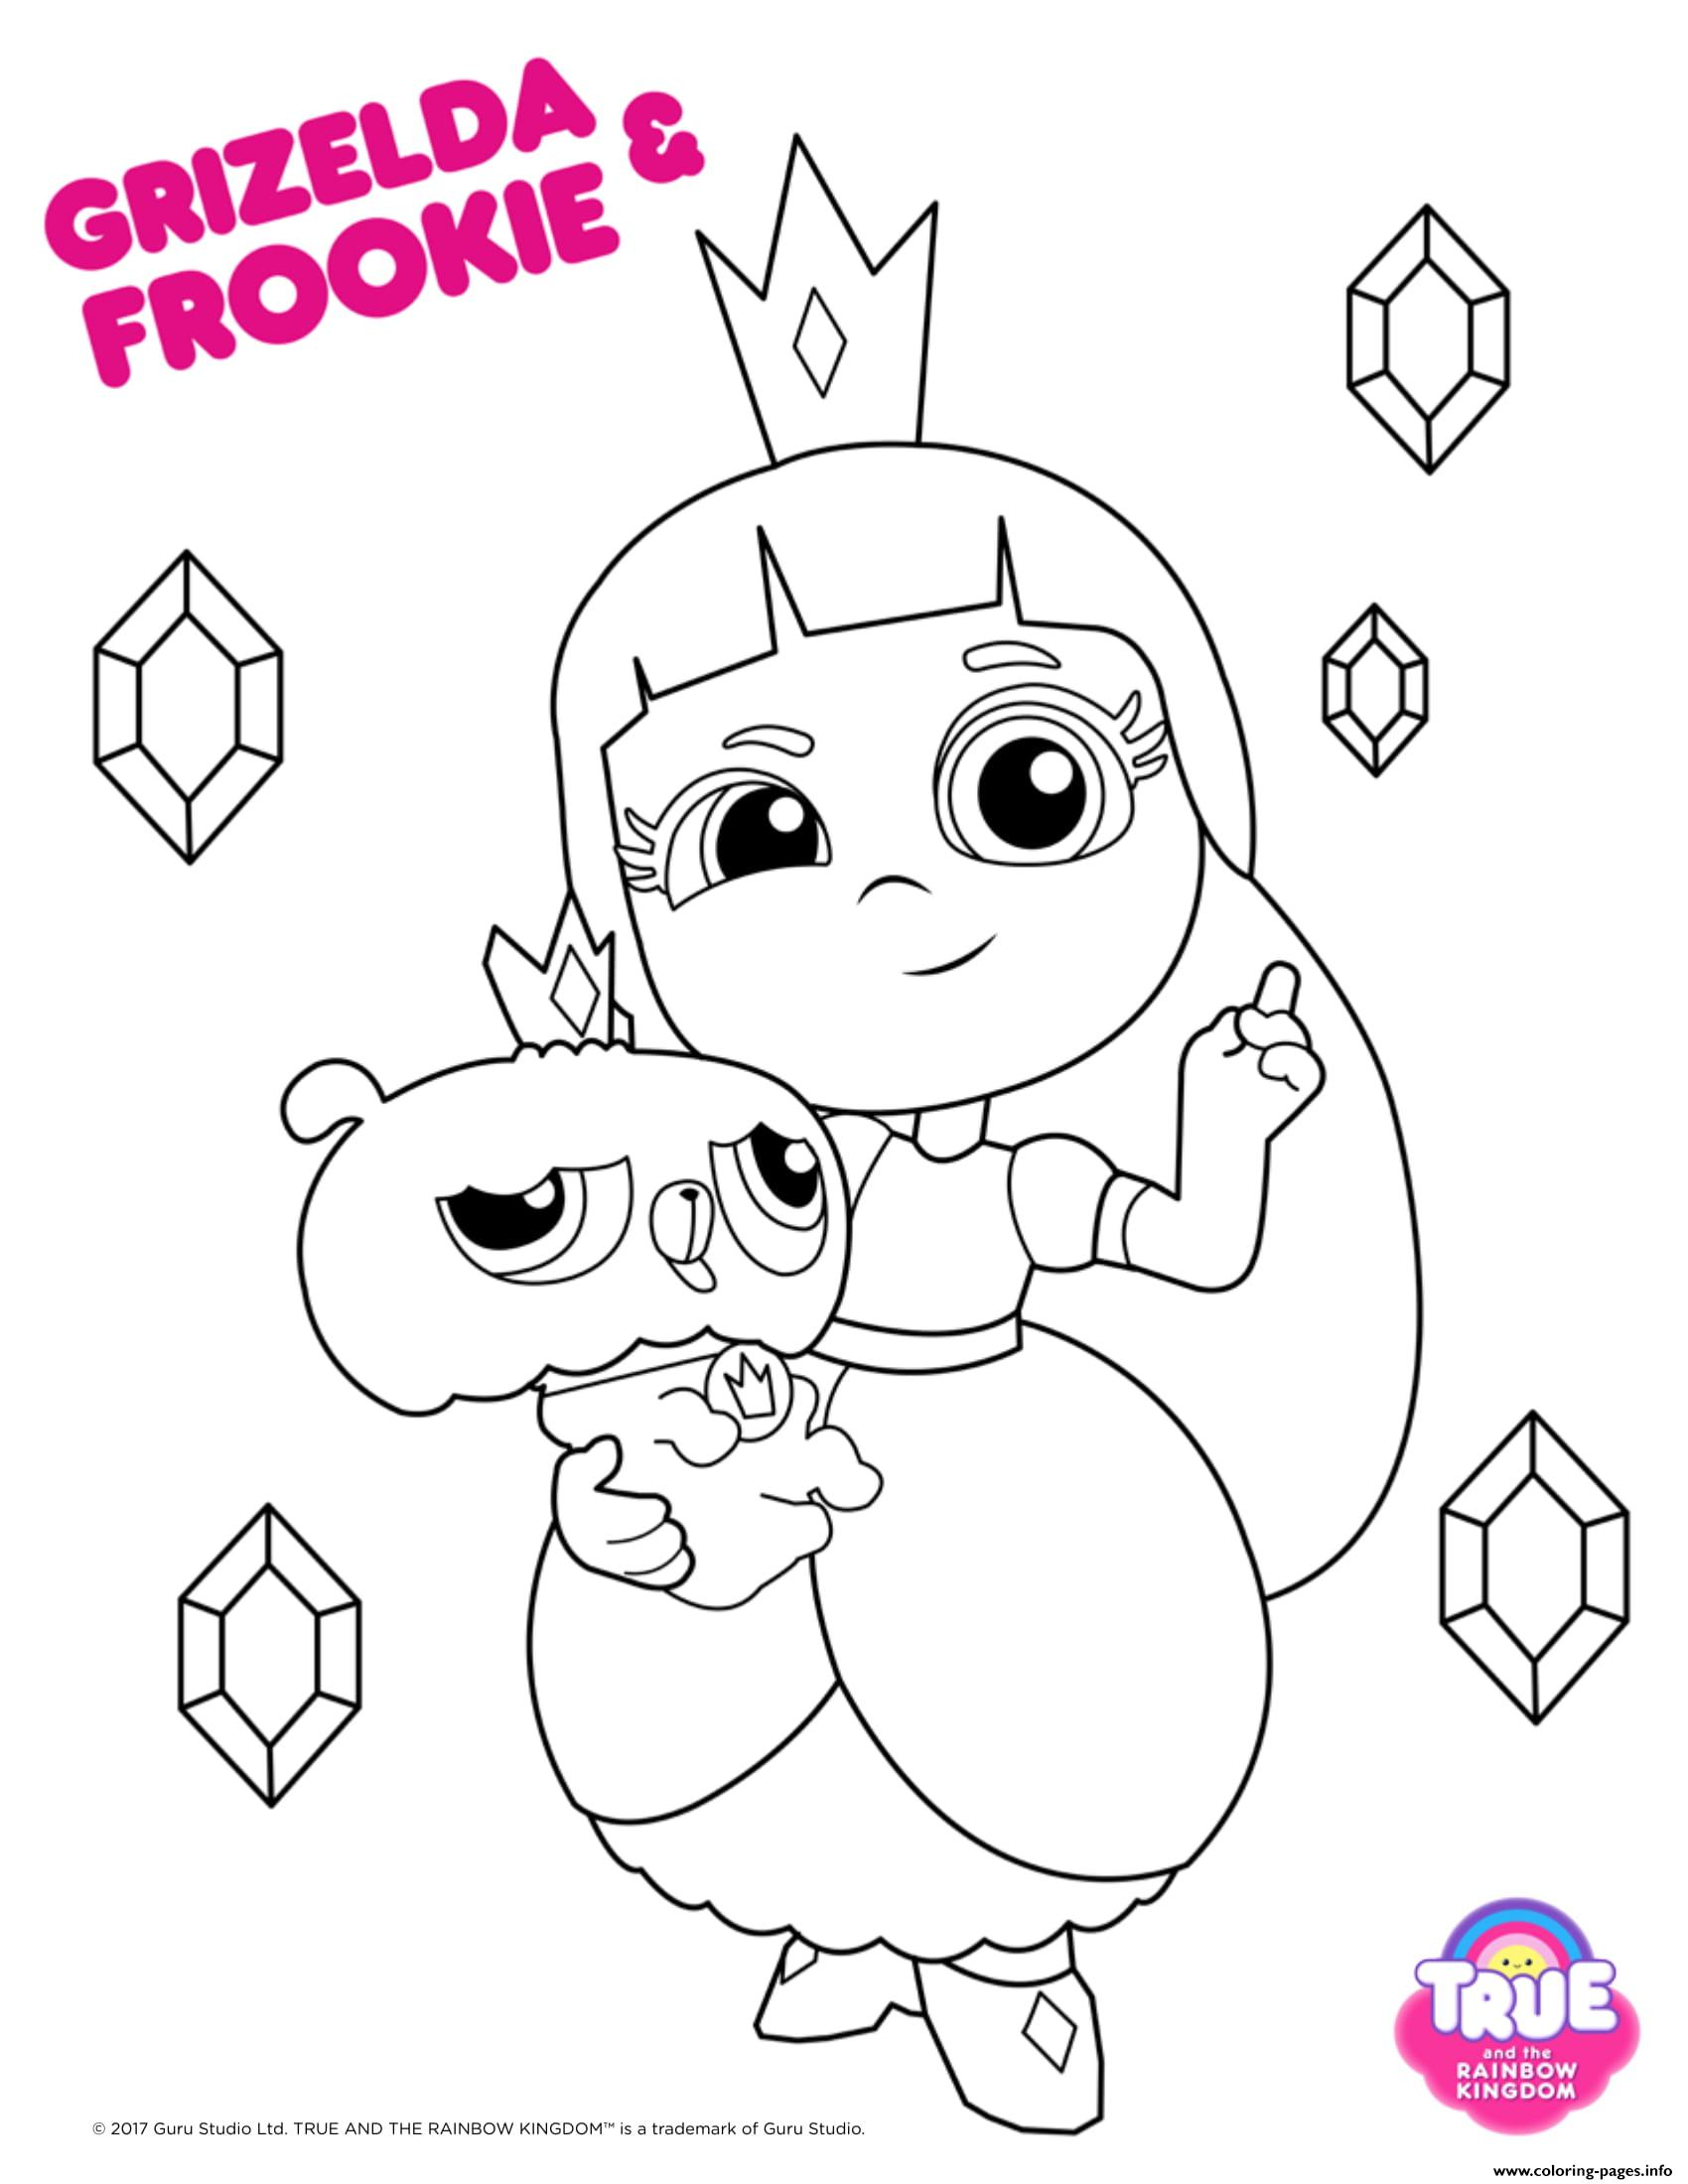 Grizelda frookie 1 true and the rainbow kingdom coloring pages printable